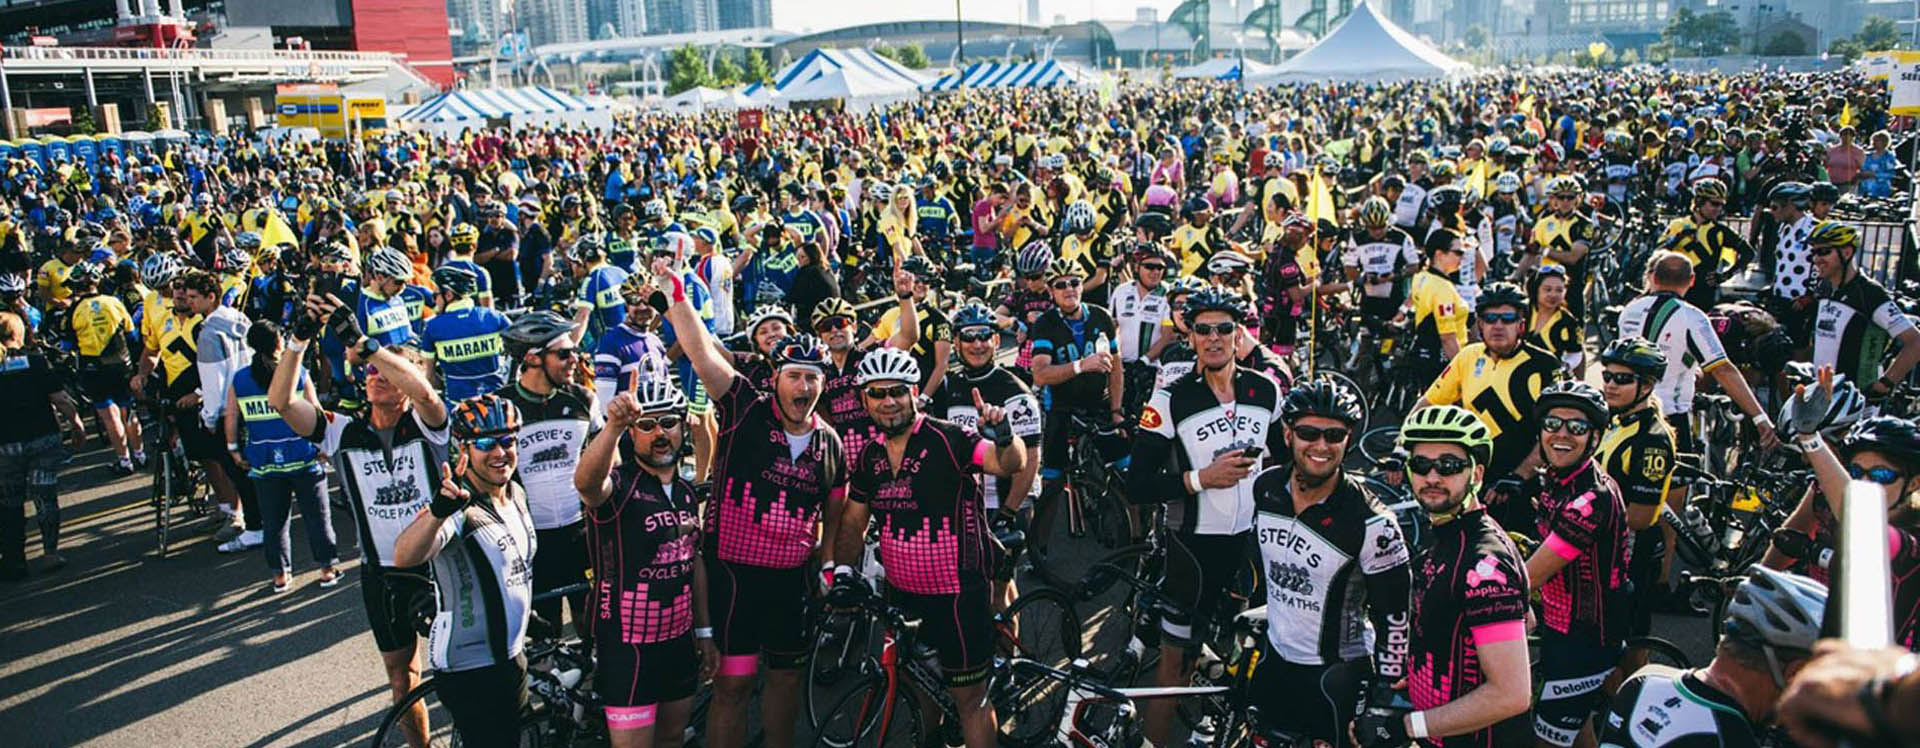 Steve's Cycle Paths and The Ride to Conquer Cancer benefiting The Princess Margaret Cancer Foundation